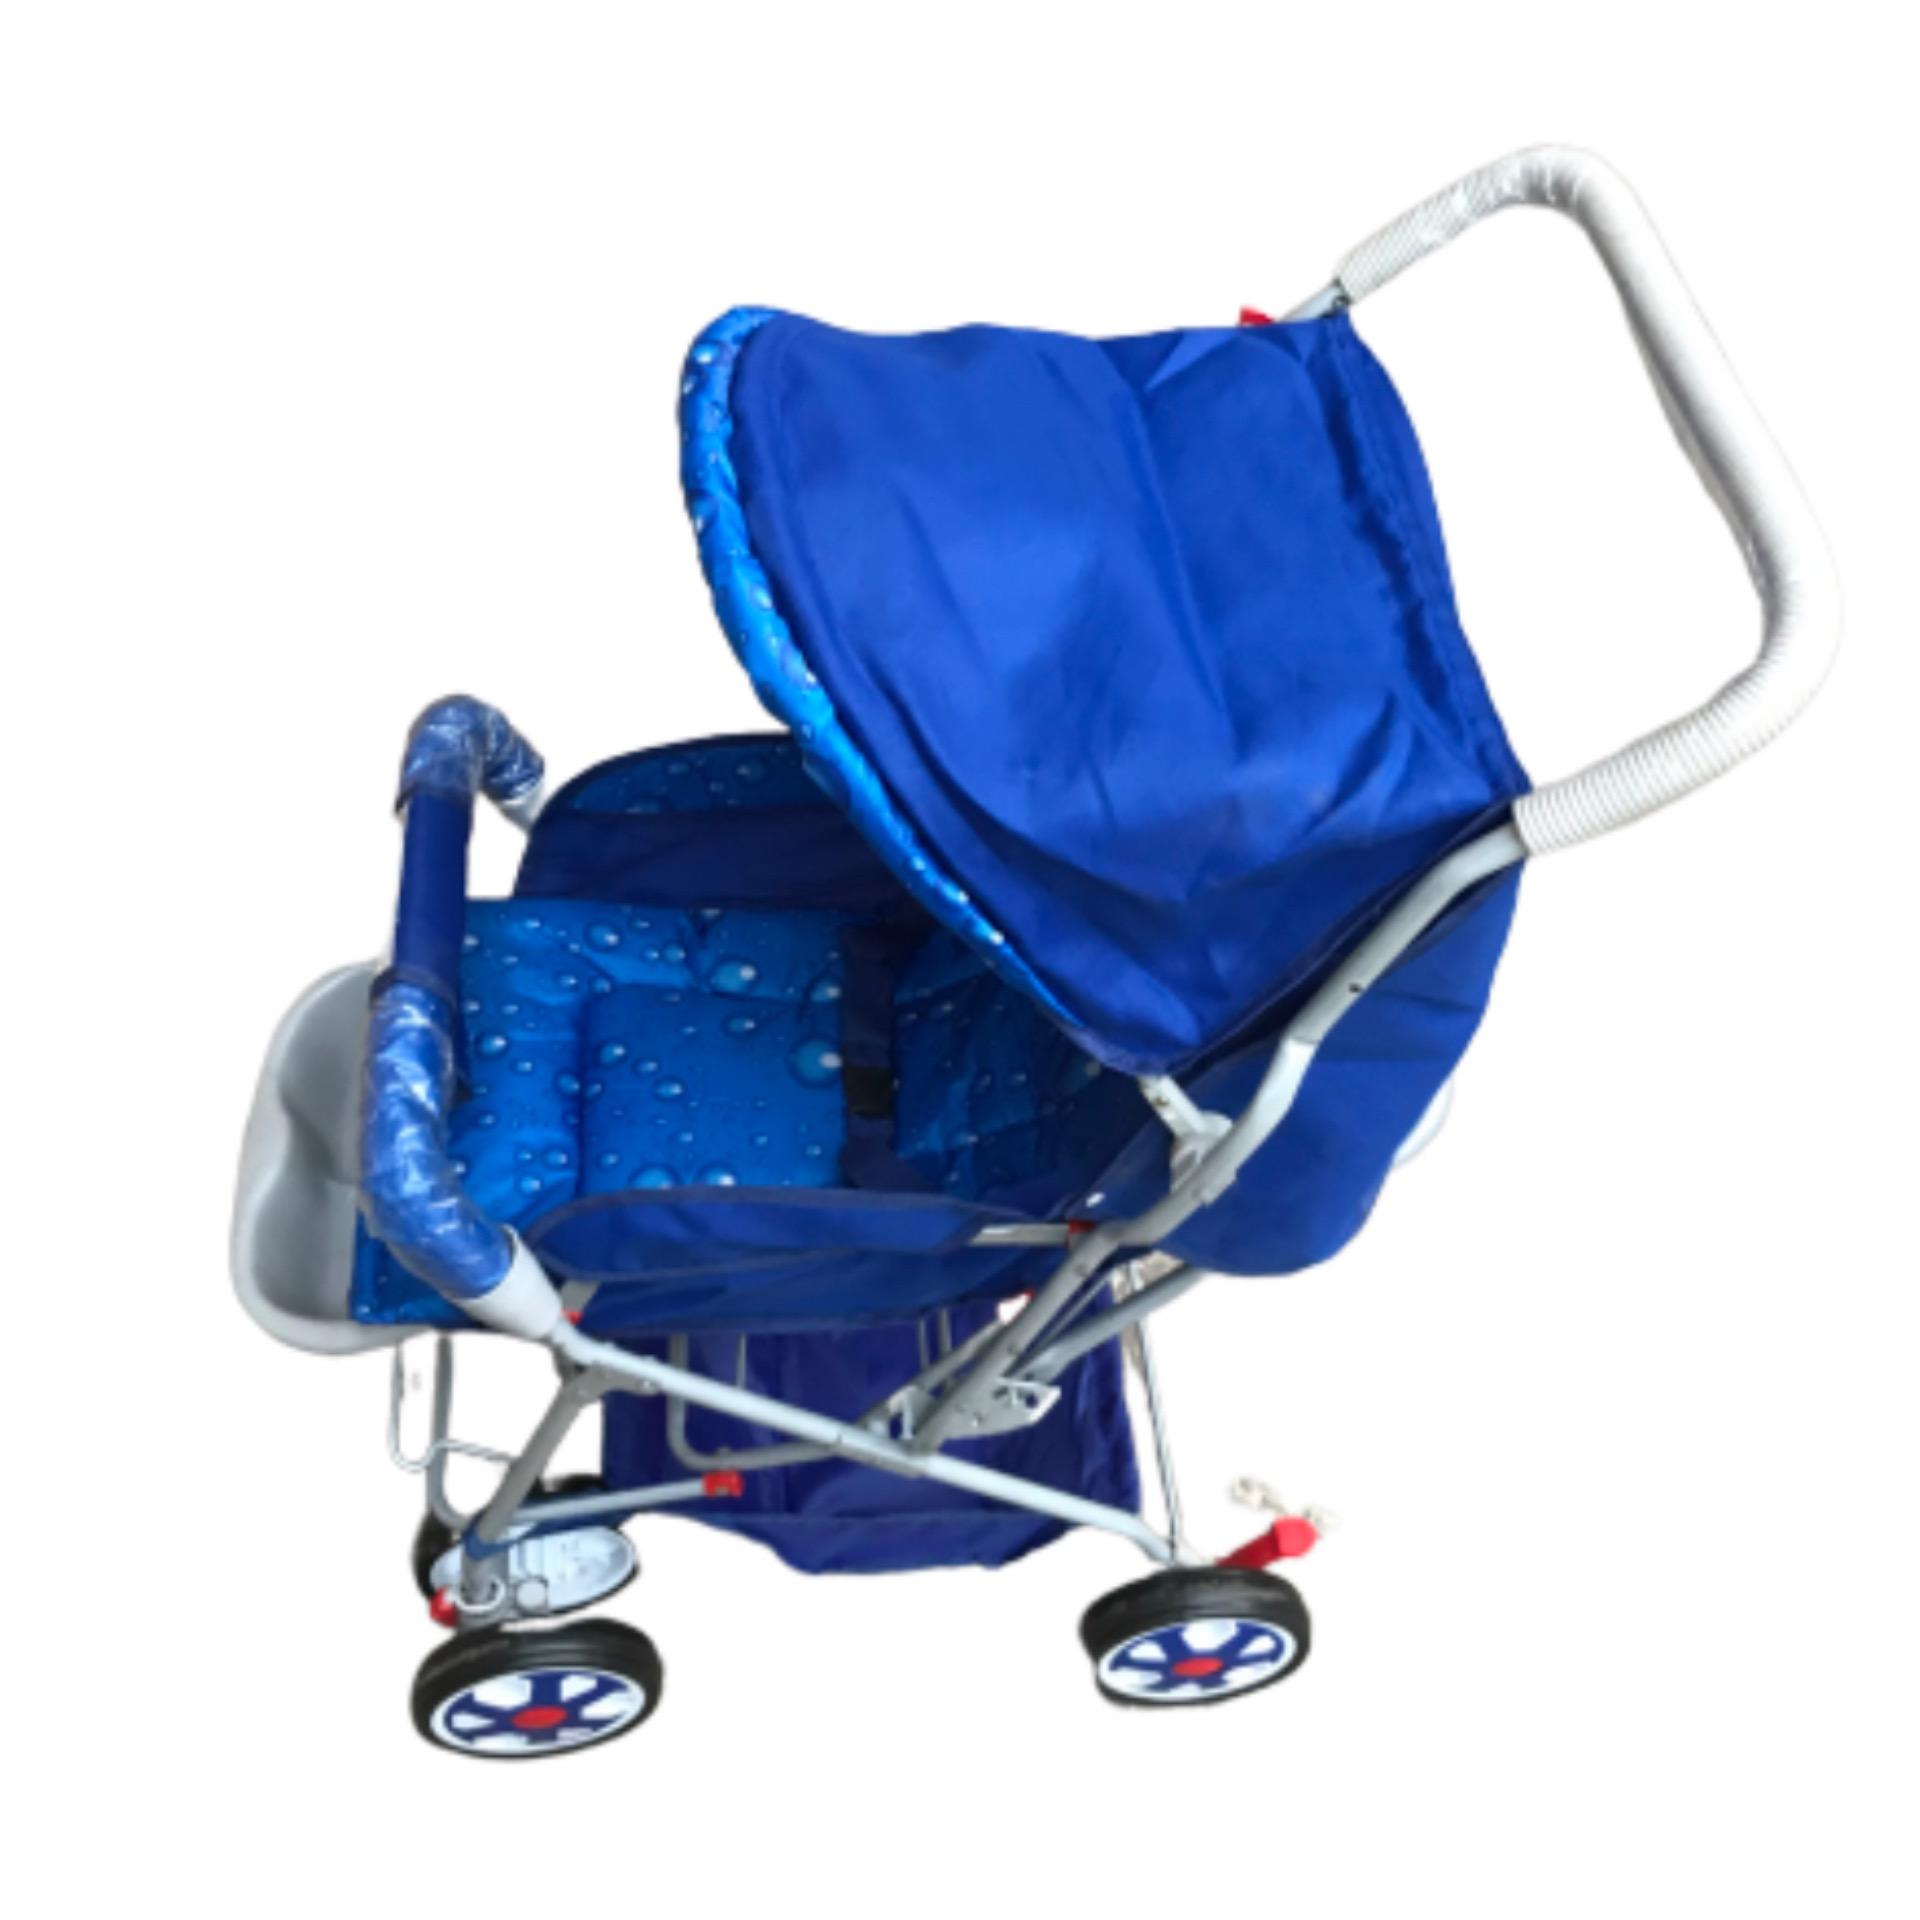 Alloy Foldable Baby Stroller Pram For Newborn  Blue/Red color with  6 Big Tyres